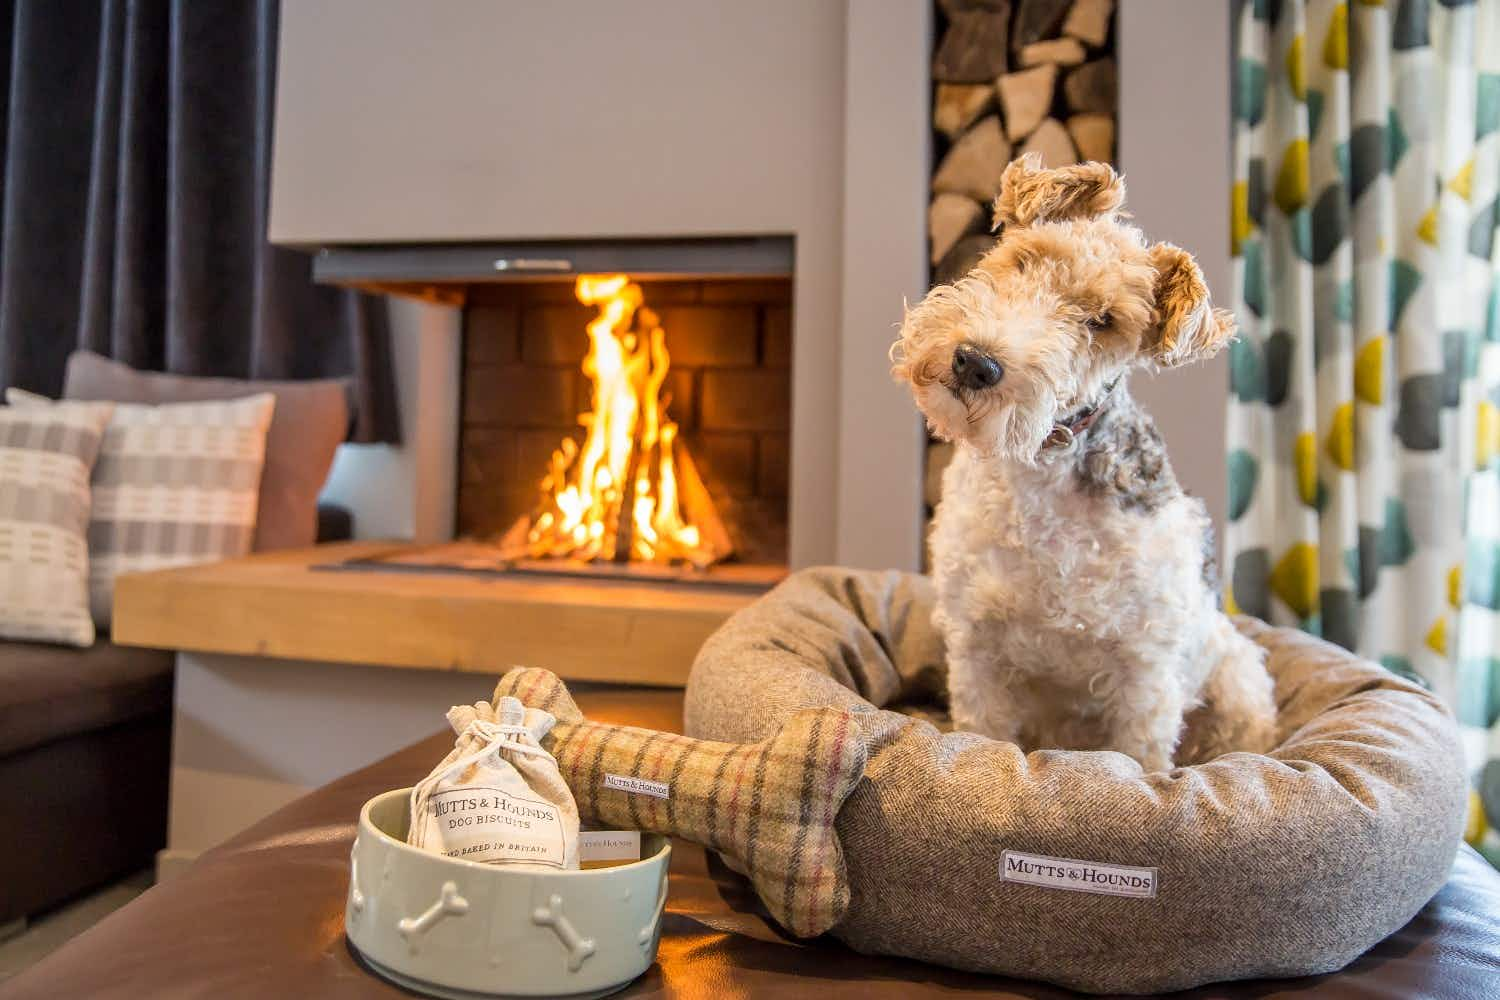 A new package for dogs will see your pet being pampered in the French Alps